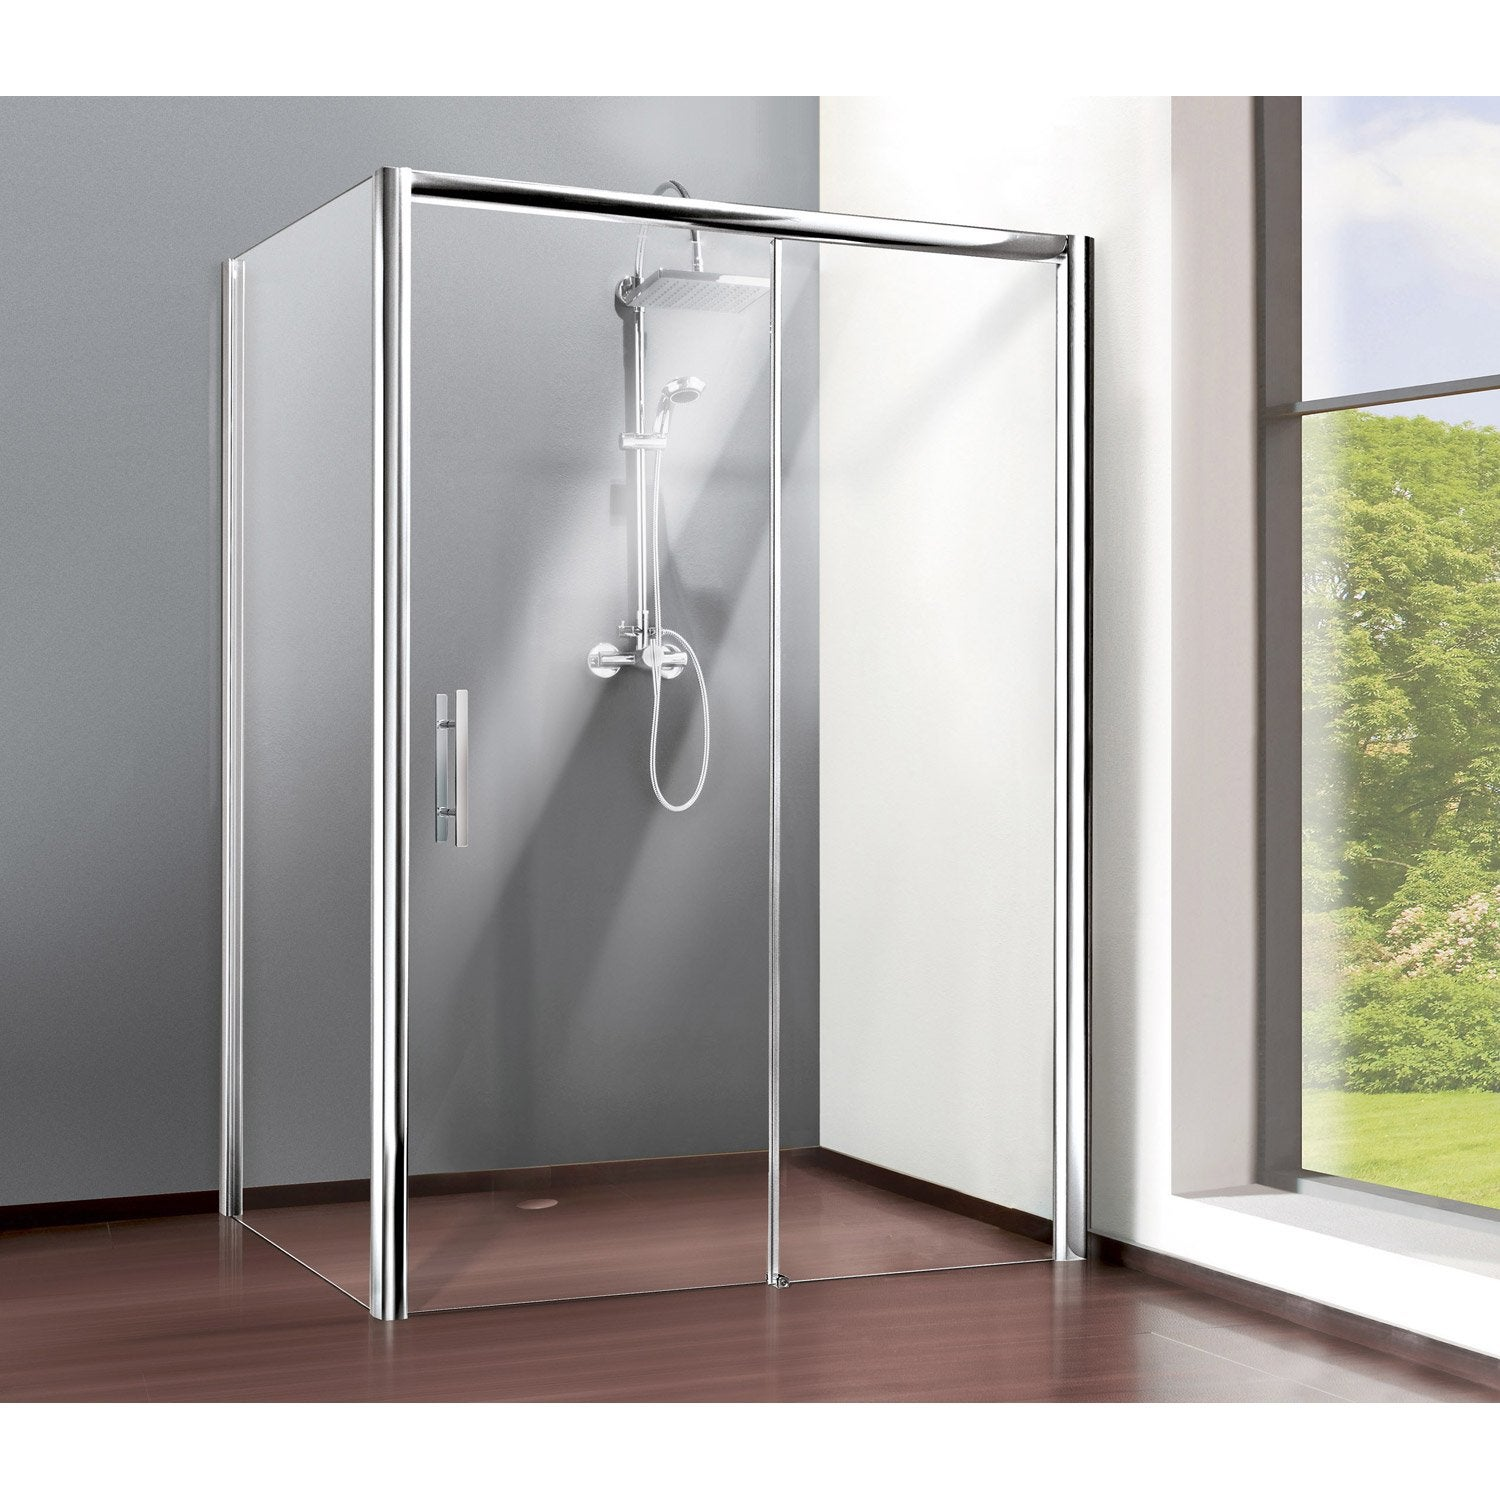 Porte de douche coulissante 100 cm transparent adena for Porte de douche 100